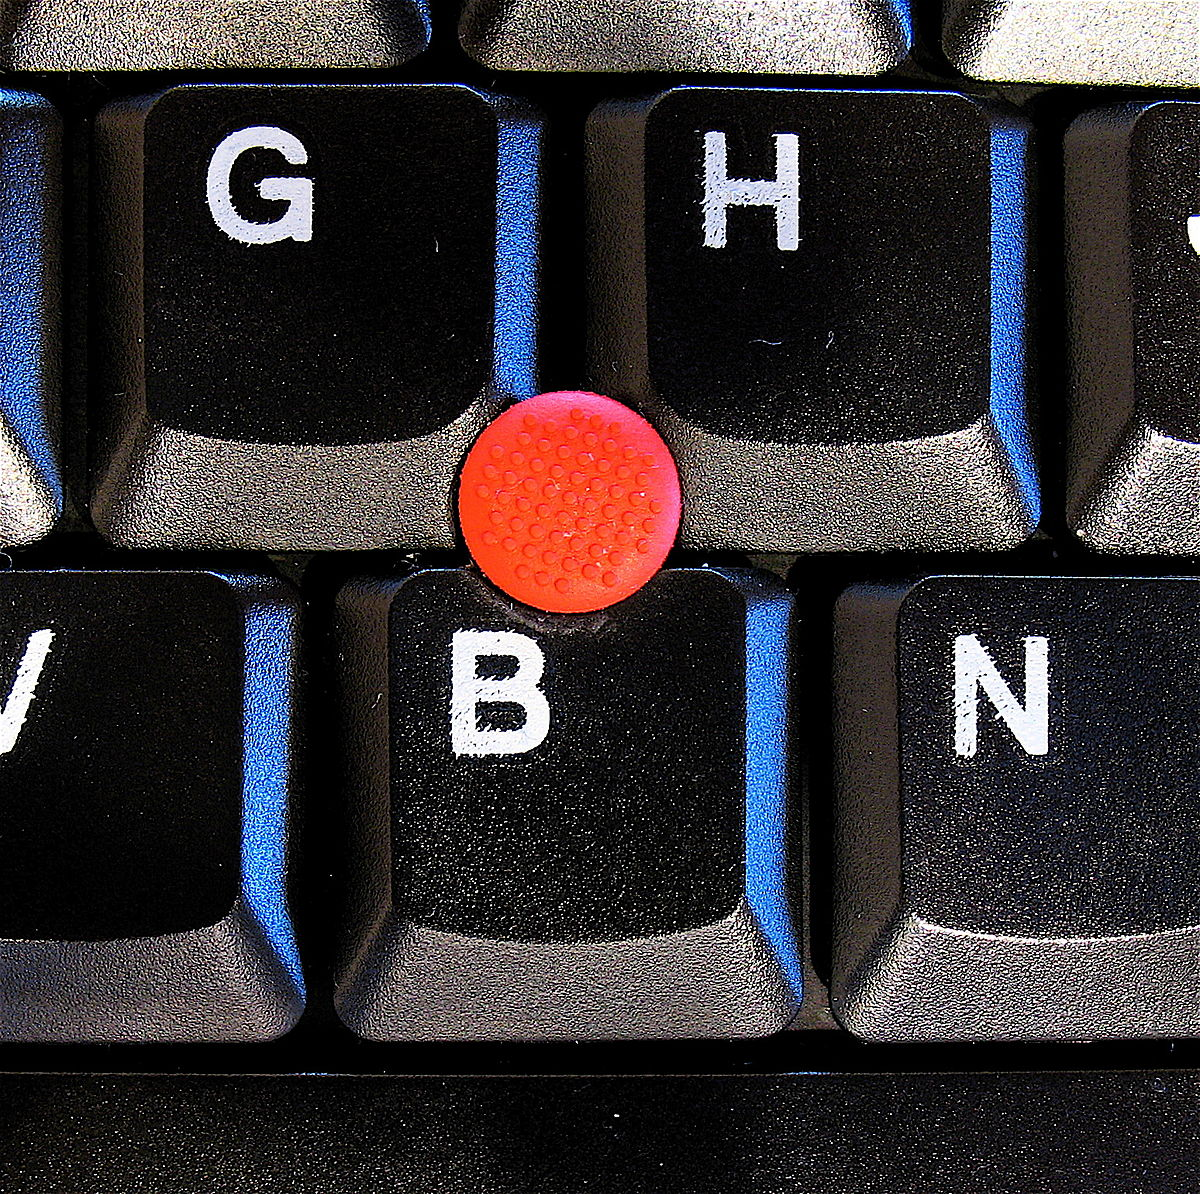 Trackpoint Wikipedia